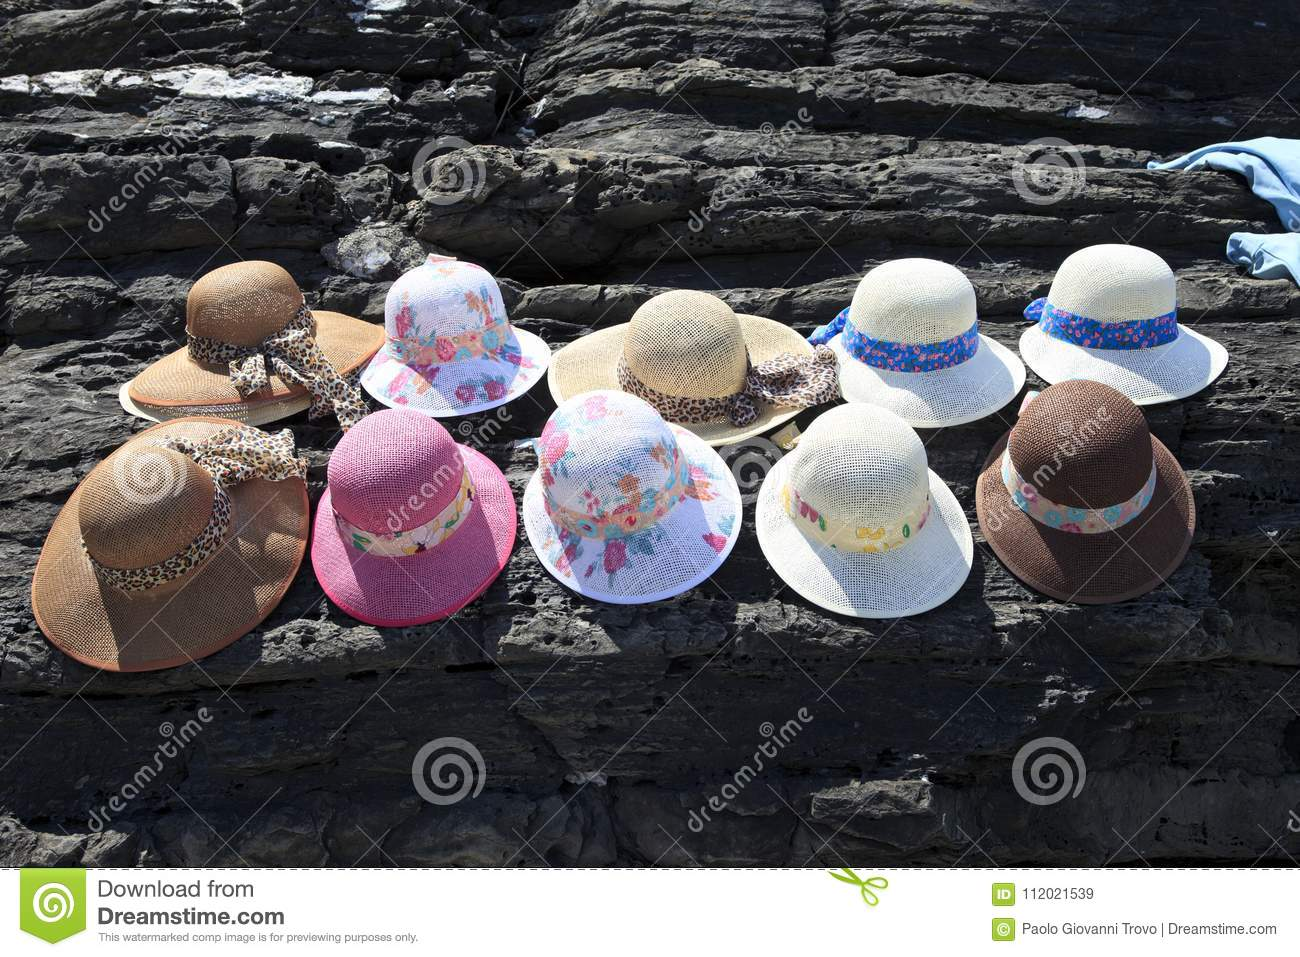 139e253152d052 Monterosso SP , Italy - April 15, 2017: Hats near a souvenir shop in  Monterosso village, gulf of Poets, Cinque Terre, La Spezia, Liguria, Italy